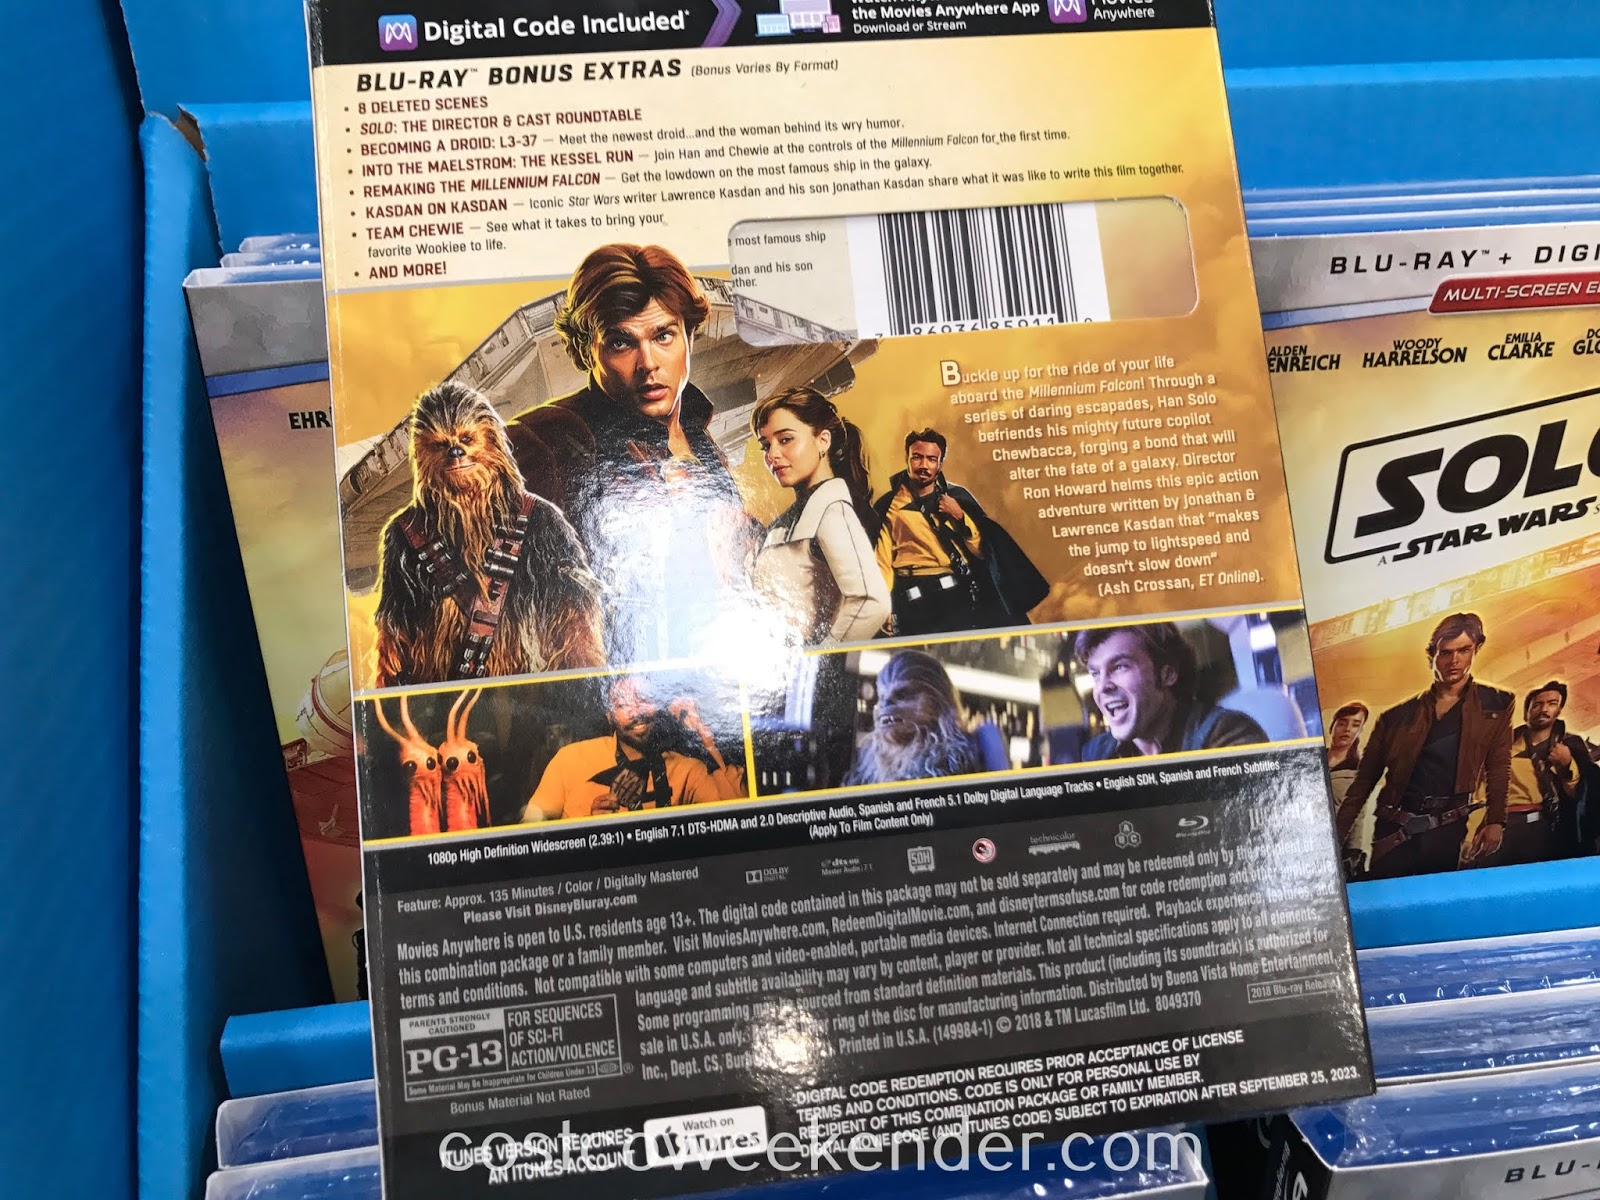 Costco 1274136 - Solo: A Star Wars Story Blu-ray: great for any Star Wars fan